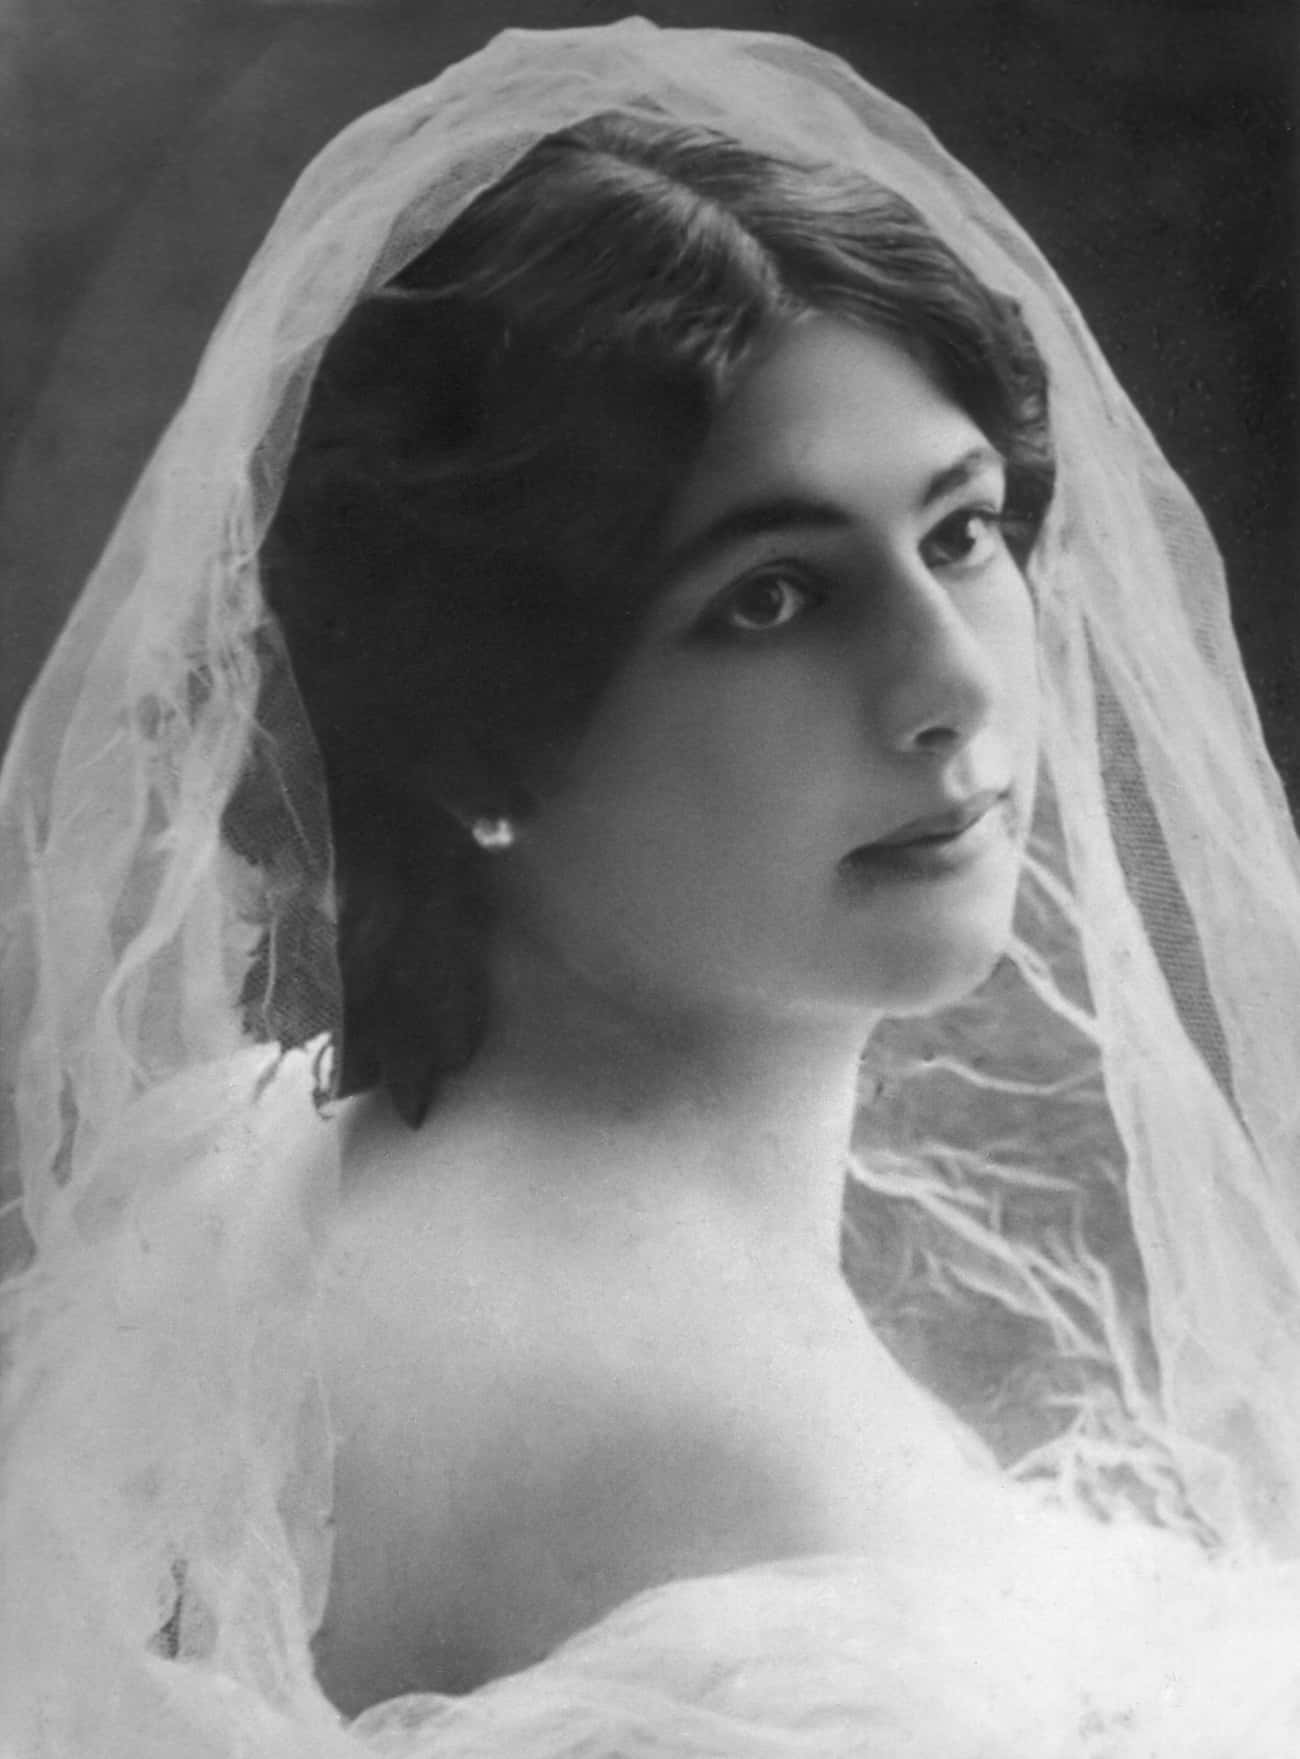 She Became A Classifieds Bride is listed (or ranked) 2 on the list Buckwild Facts About Mata Hari, The Exotic Dancer Who Became A WWI Spy